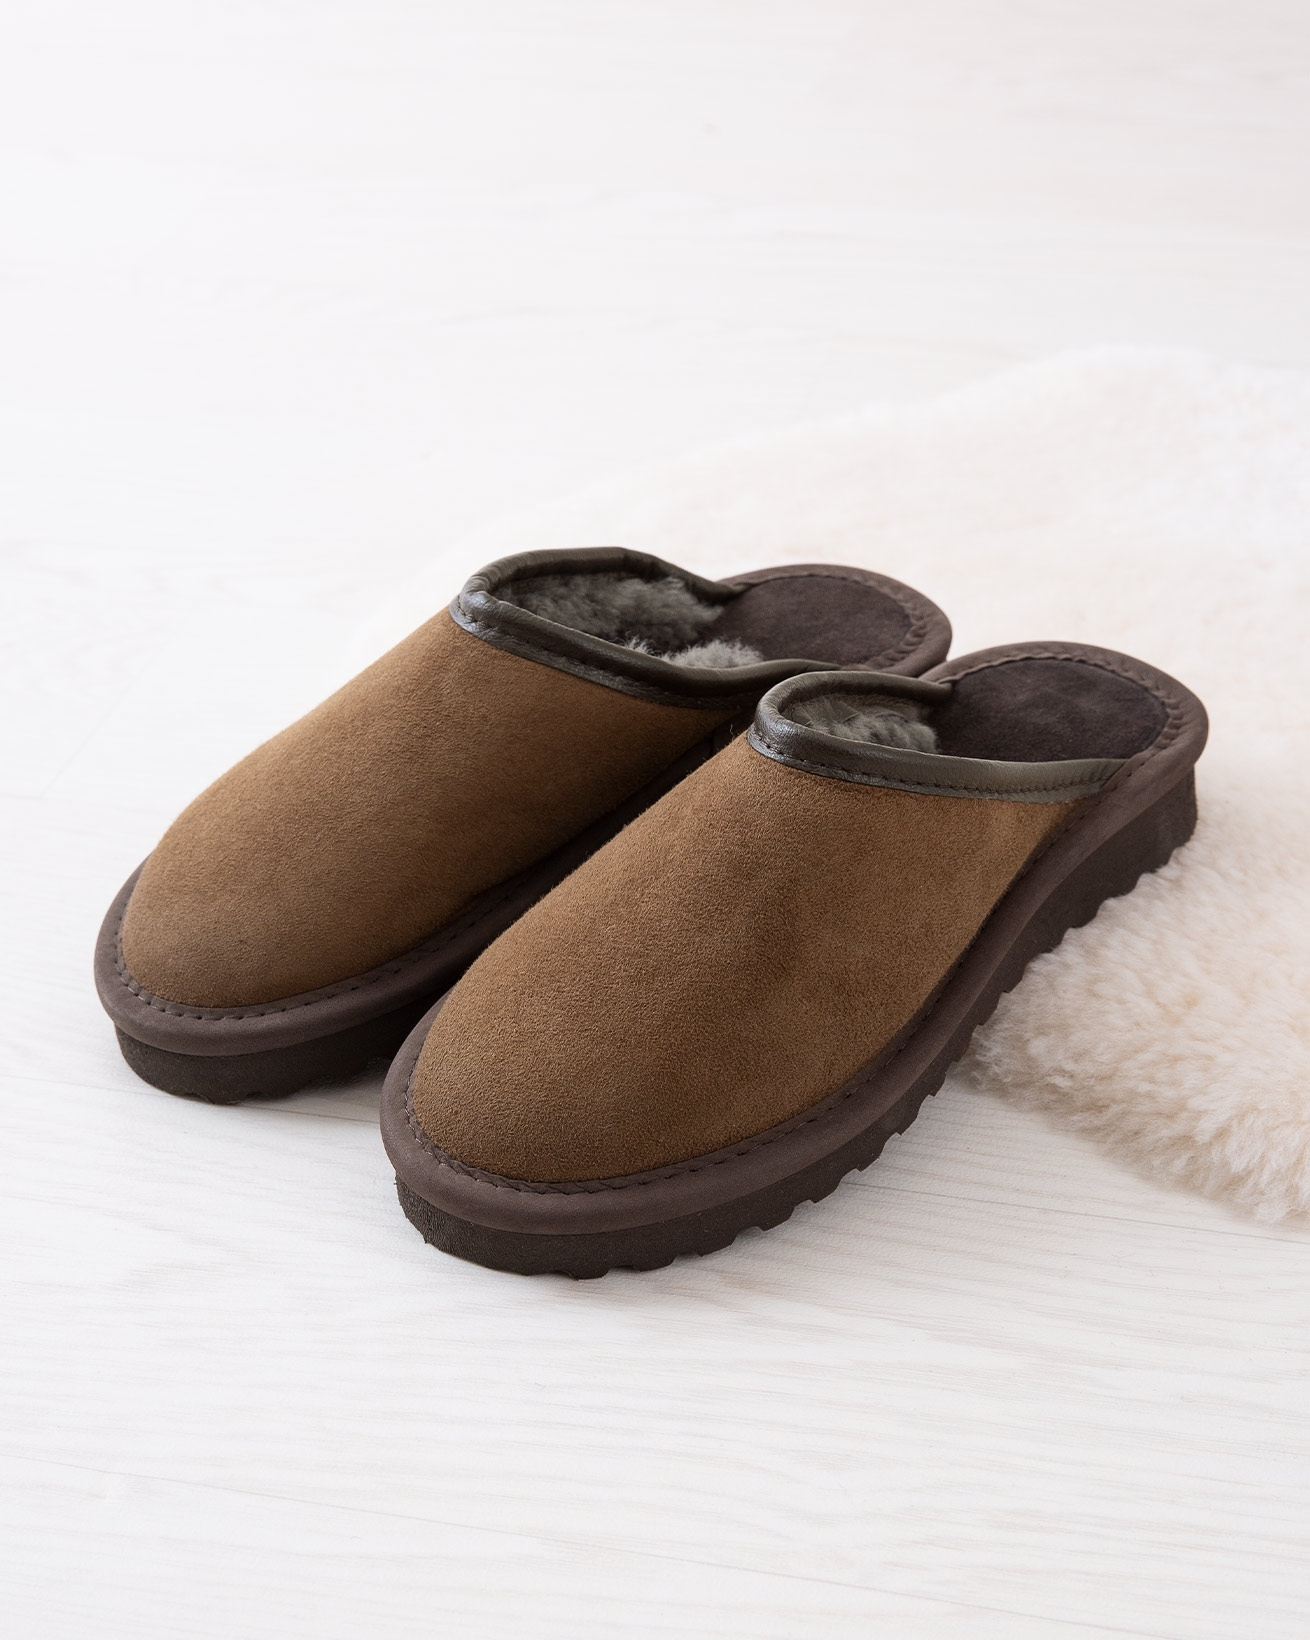 6617_ladies-clogs_khaki_lifestyle_lfs.jpg